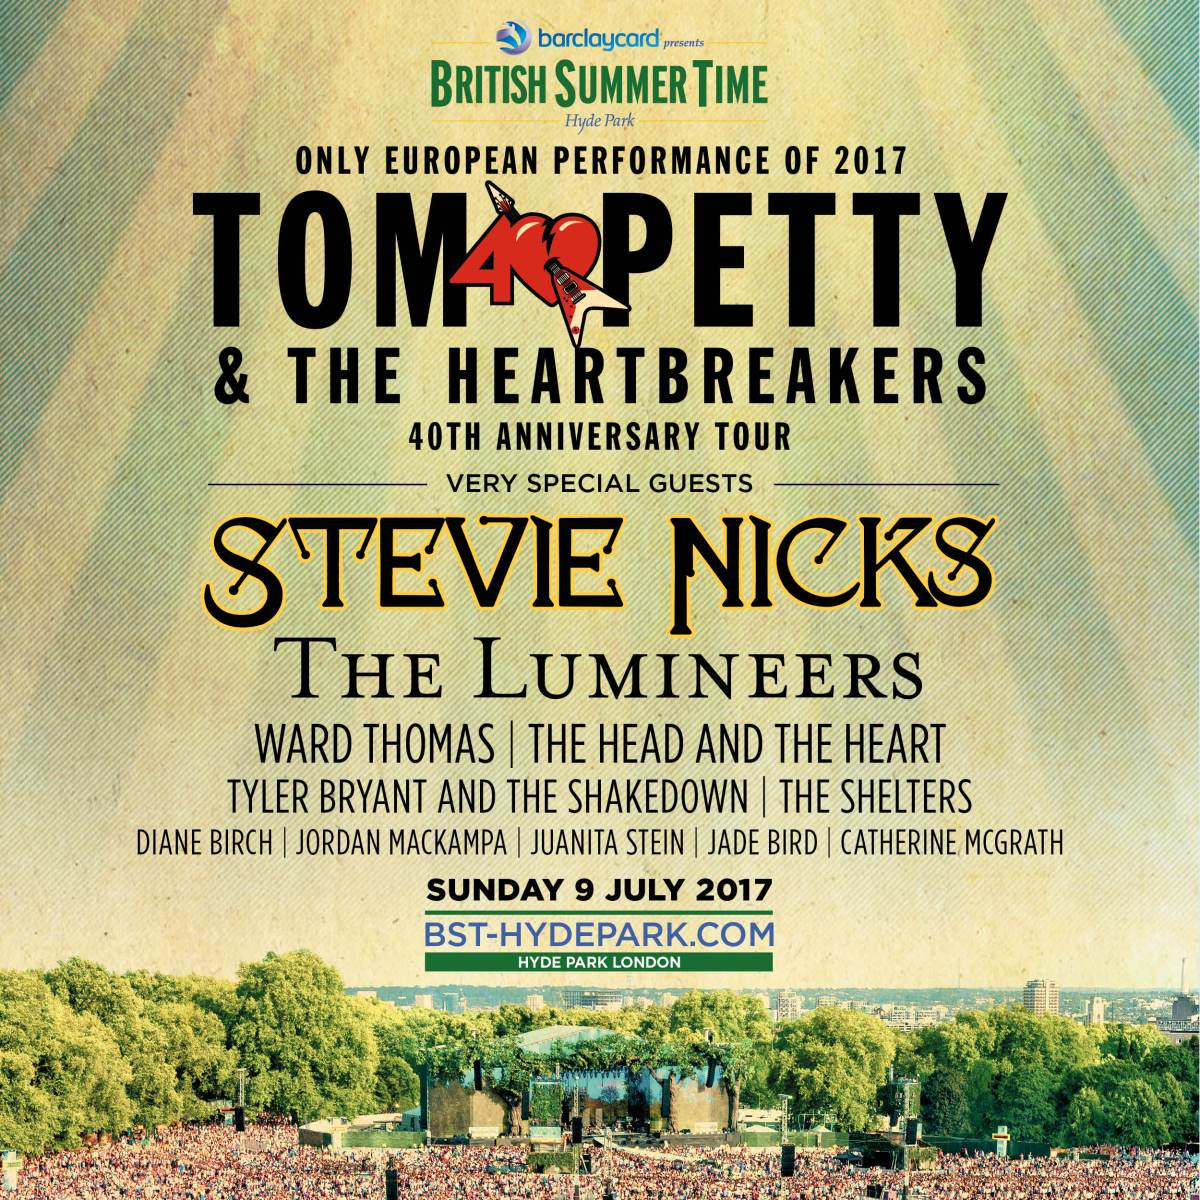 Festival Review: British Summer Time - Feat. Tom Petty, Stevie Nicks, The Lumineers & More